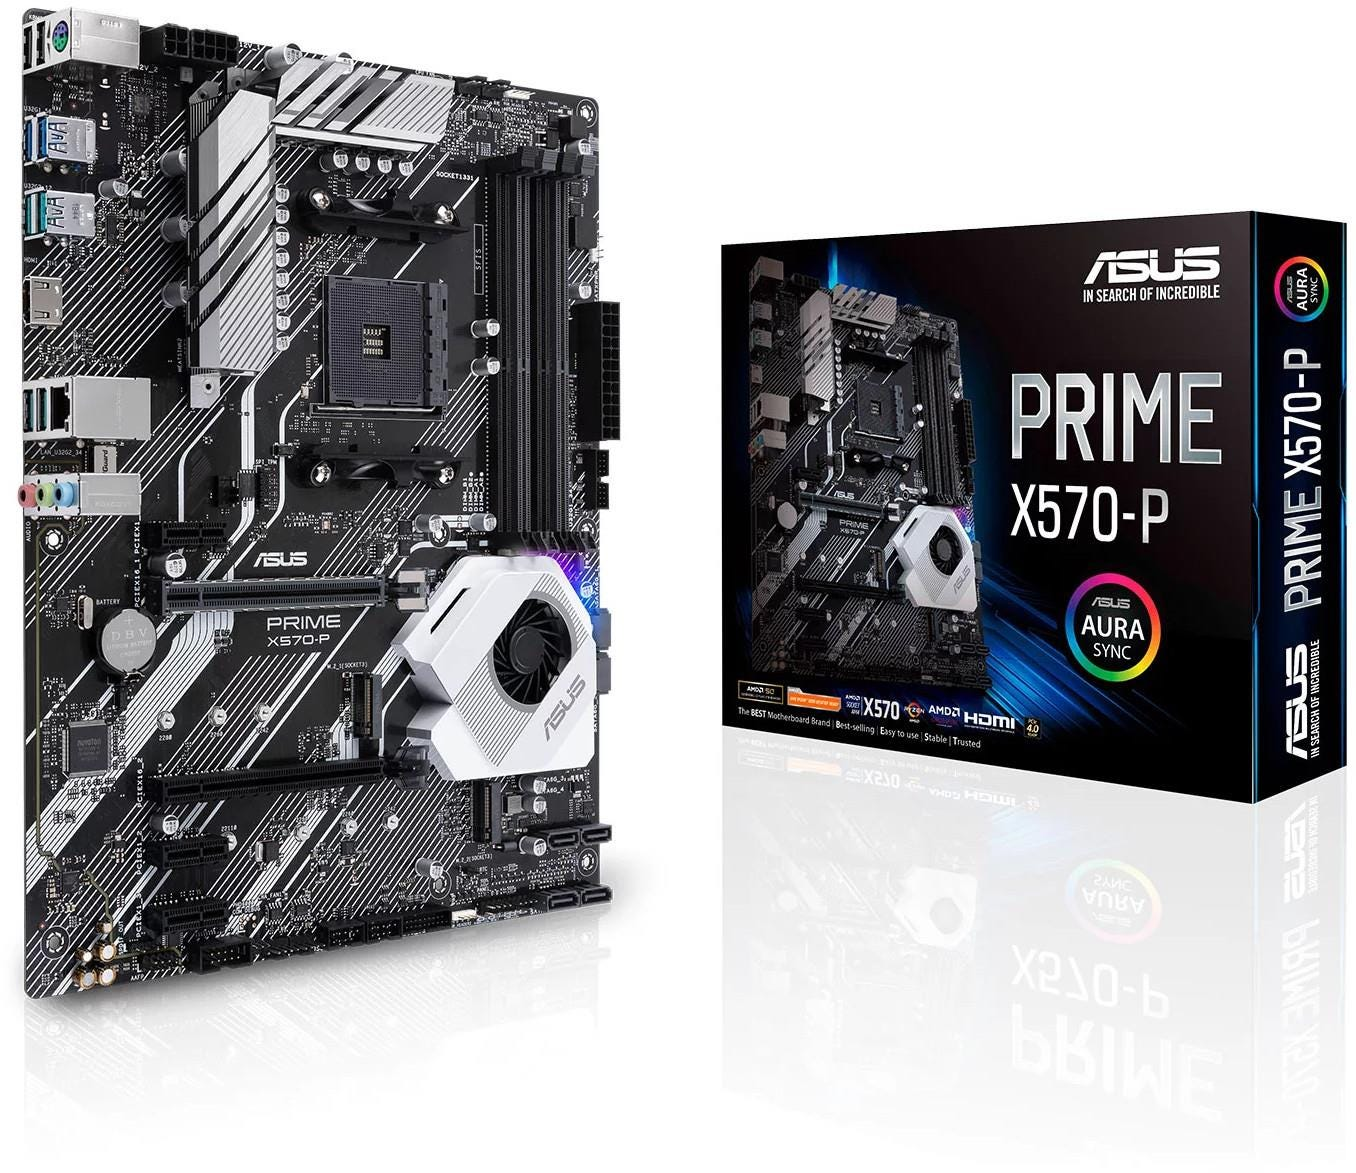 ASUS Prime Pro AMD X570 AM4 DDR4 ATX Motherboard